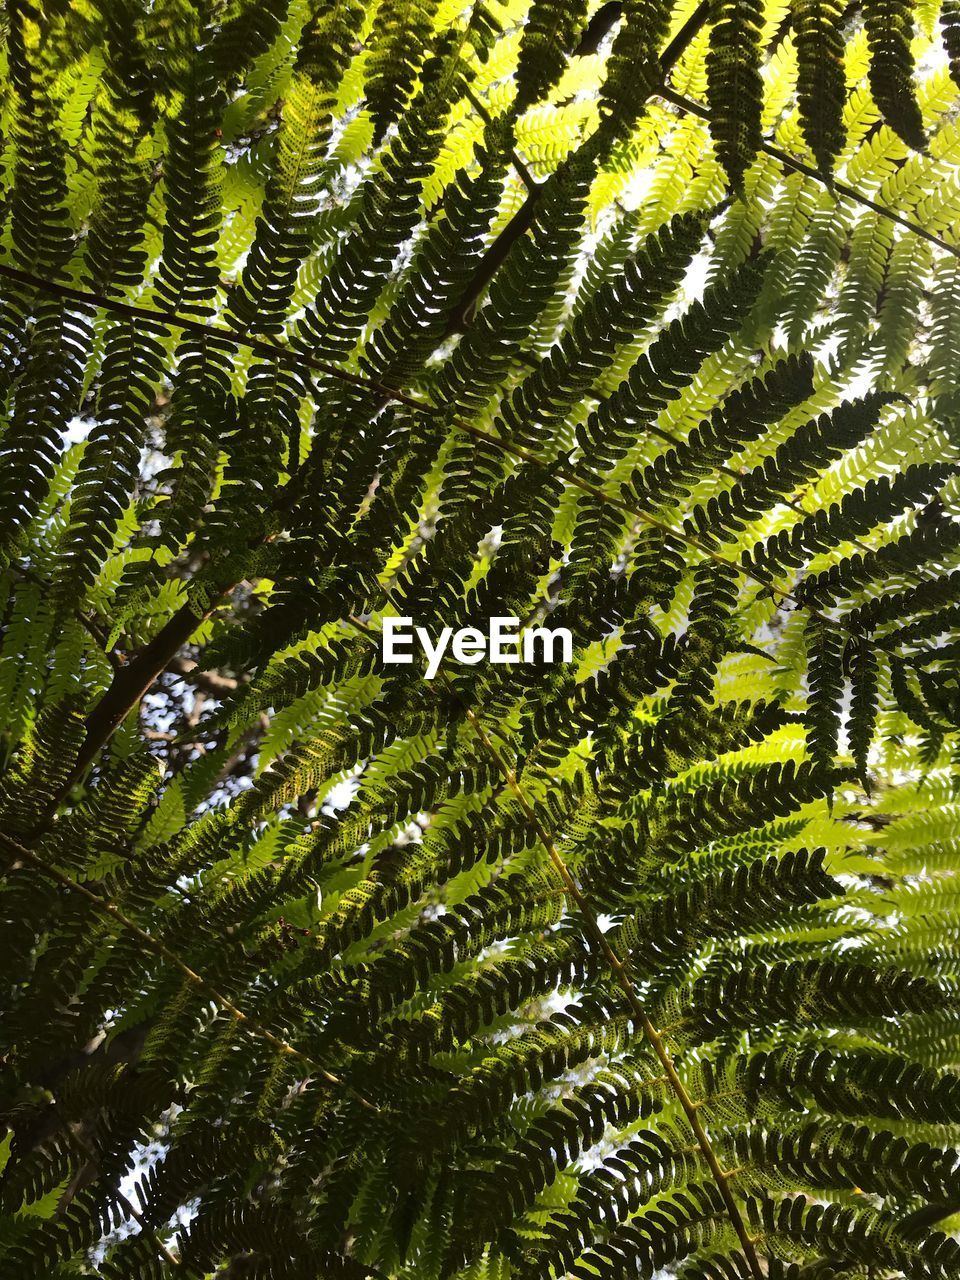 plant, leaf, plant part, growth, beauty in nature, green color, tree, nature, no people, full frame, fern, backgrounds, day, close-up, freshness, sunlight, outdoors, forest, tranquility, botany, leaves, palm leaf